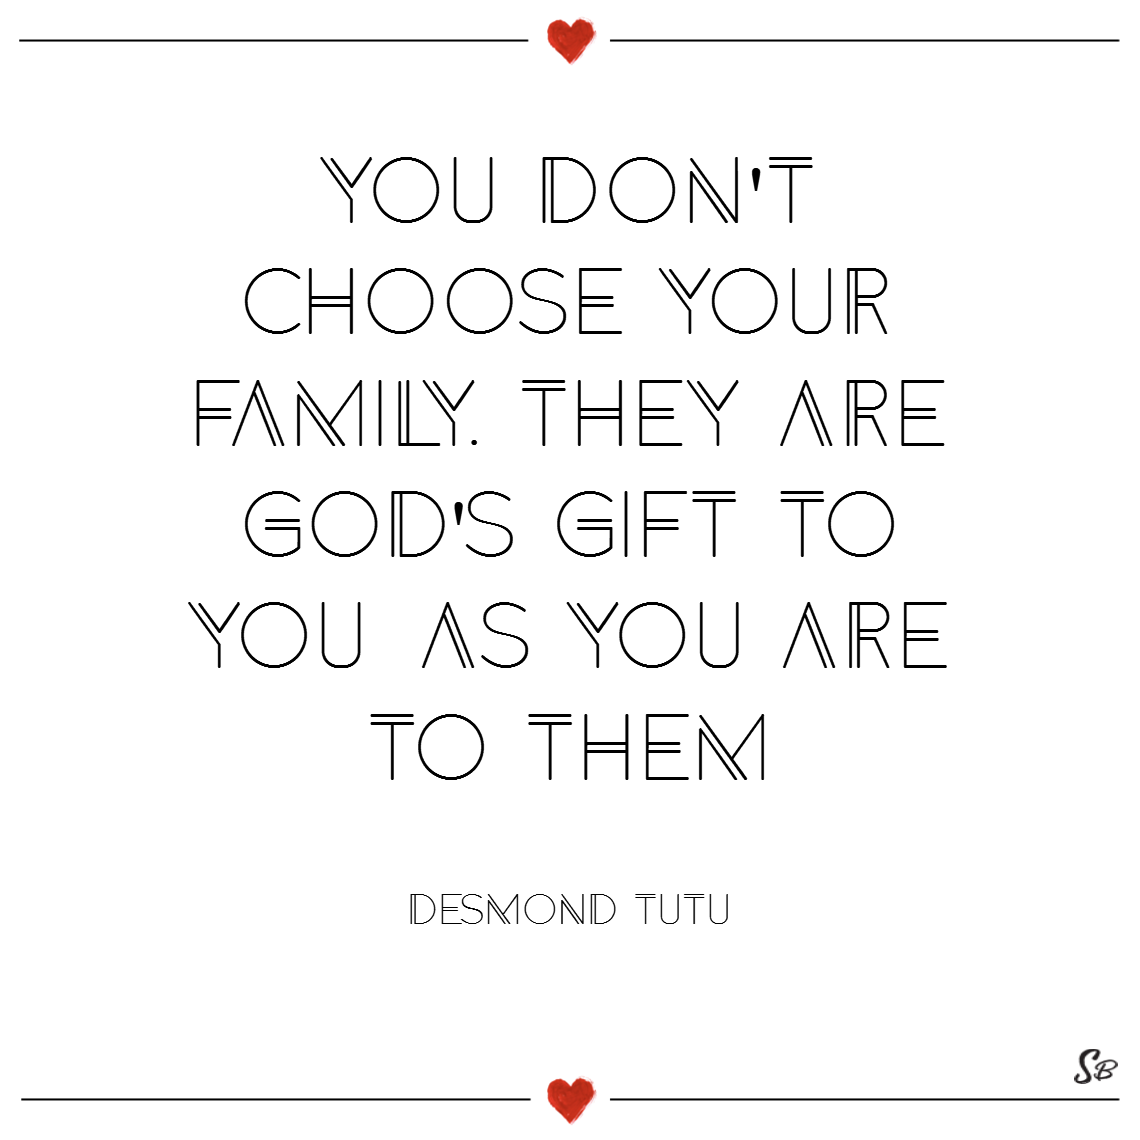 You don't choose your family. they are god's gift to you, as you are to them. – desmond tutu